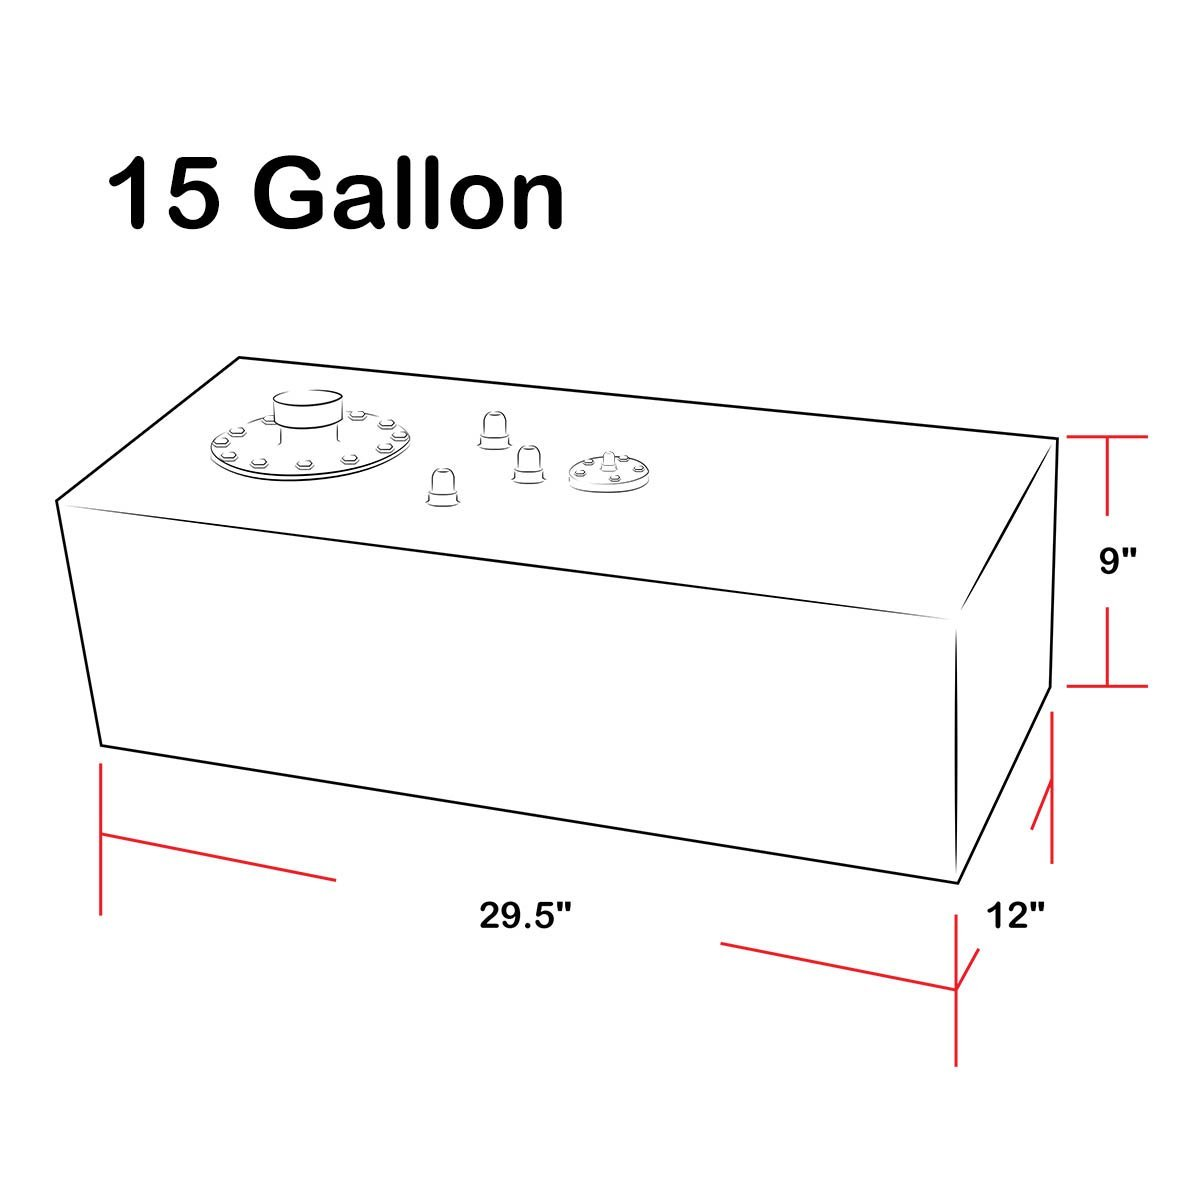 15-Gallon Top-Feed Aluminum Fuel Cell Gas Tank w/Level